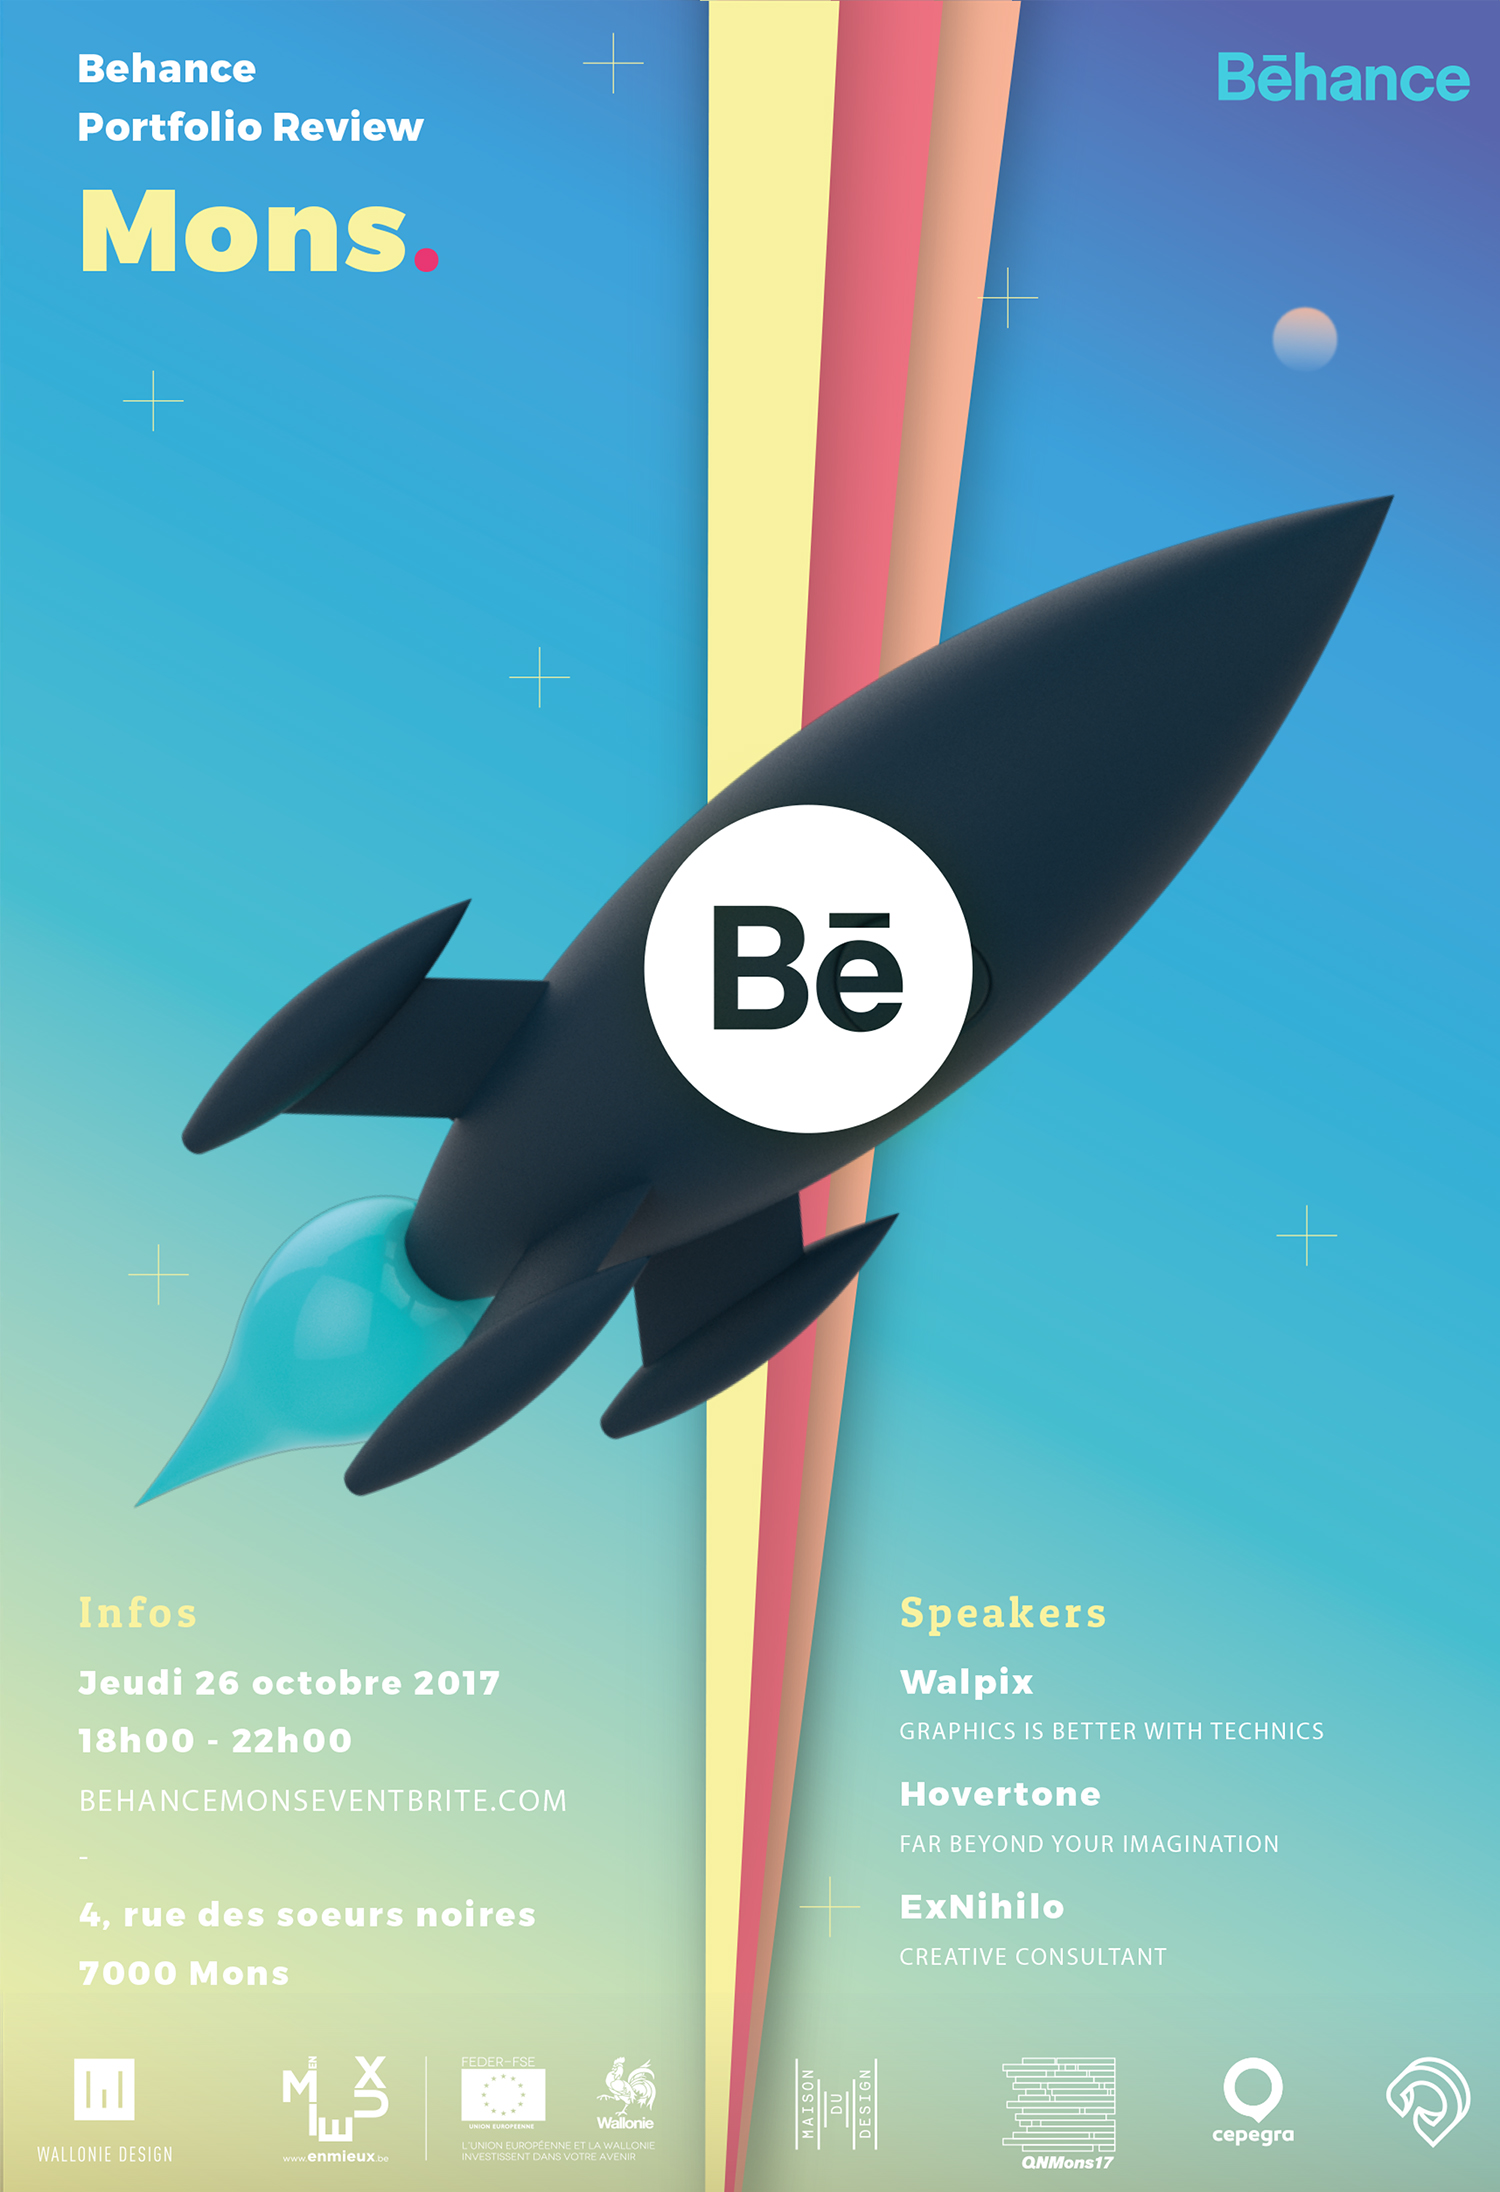 Behance Portfolio Review Mons